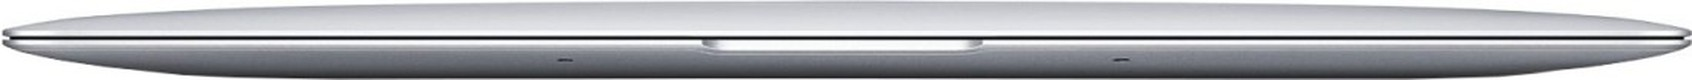 Apple MacBook Air MD761HN/A Ultrabook (Core i5 4th Gen/4 GB/256 GB SSD/MAC OS X Mountain Lion) - Side